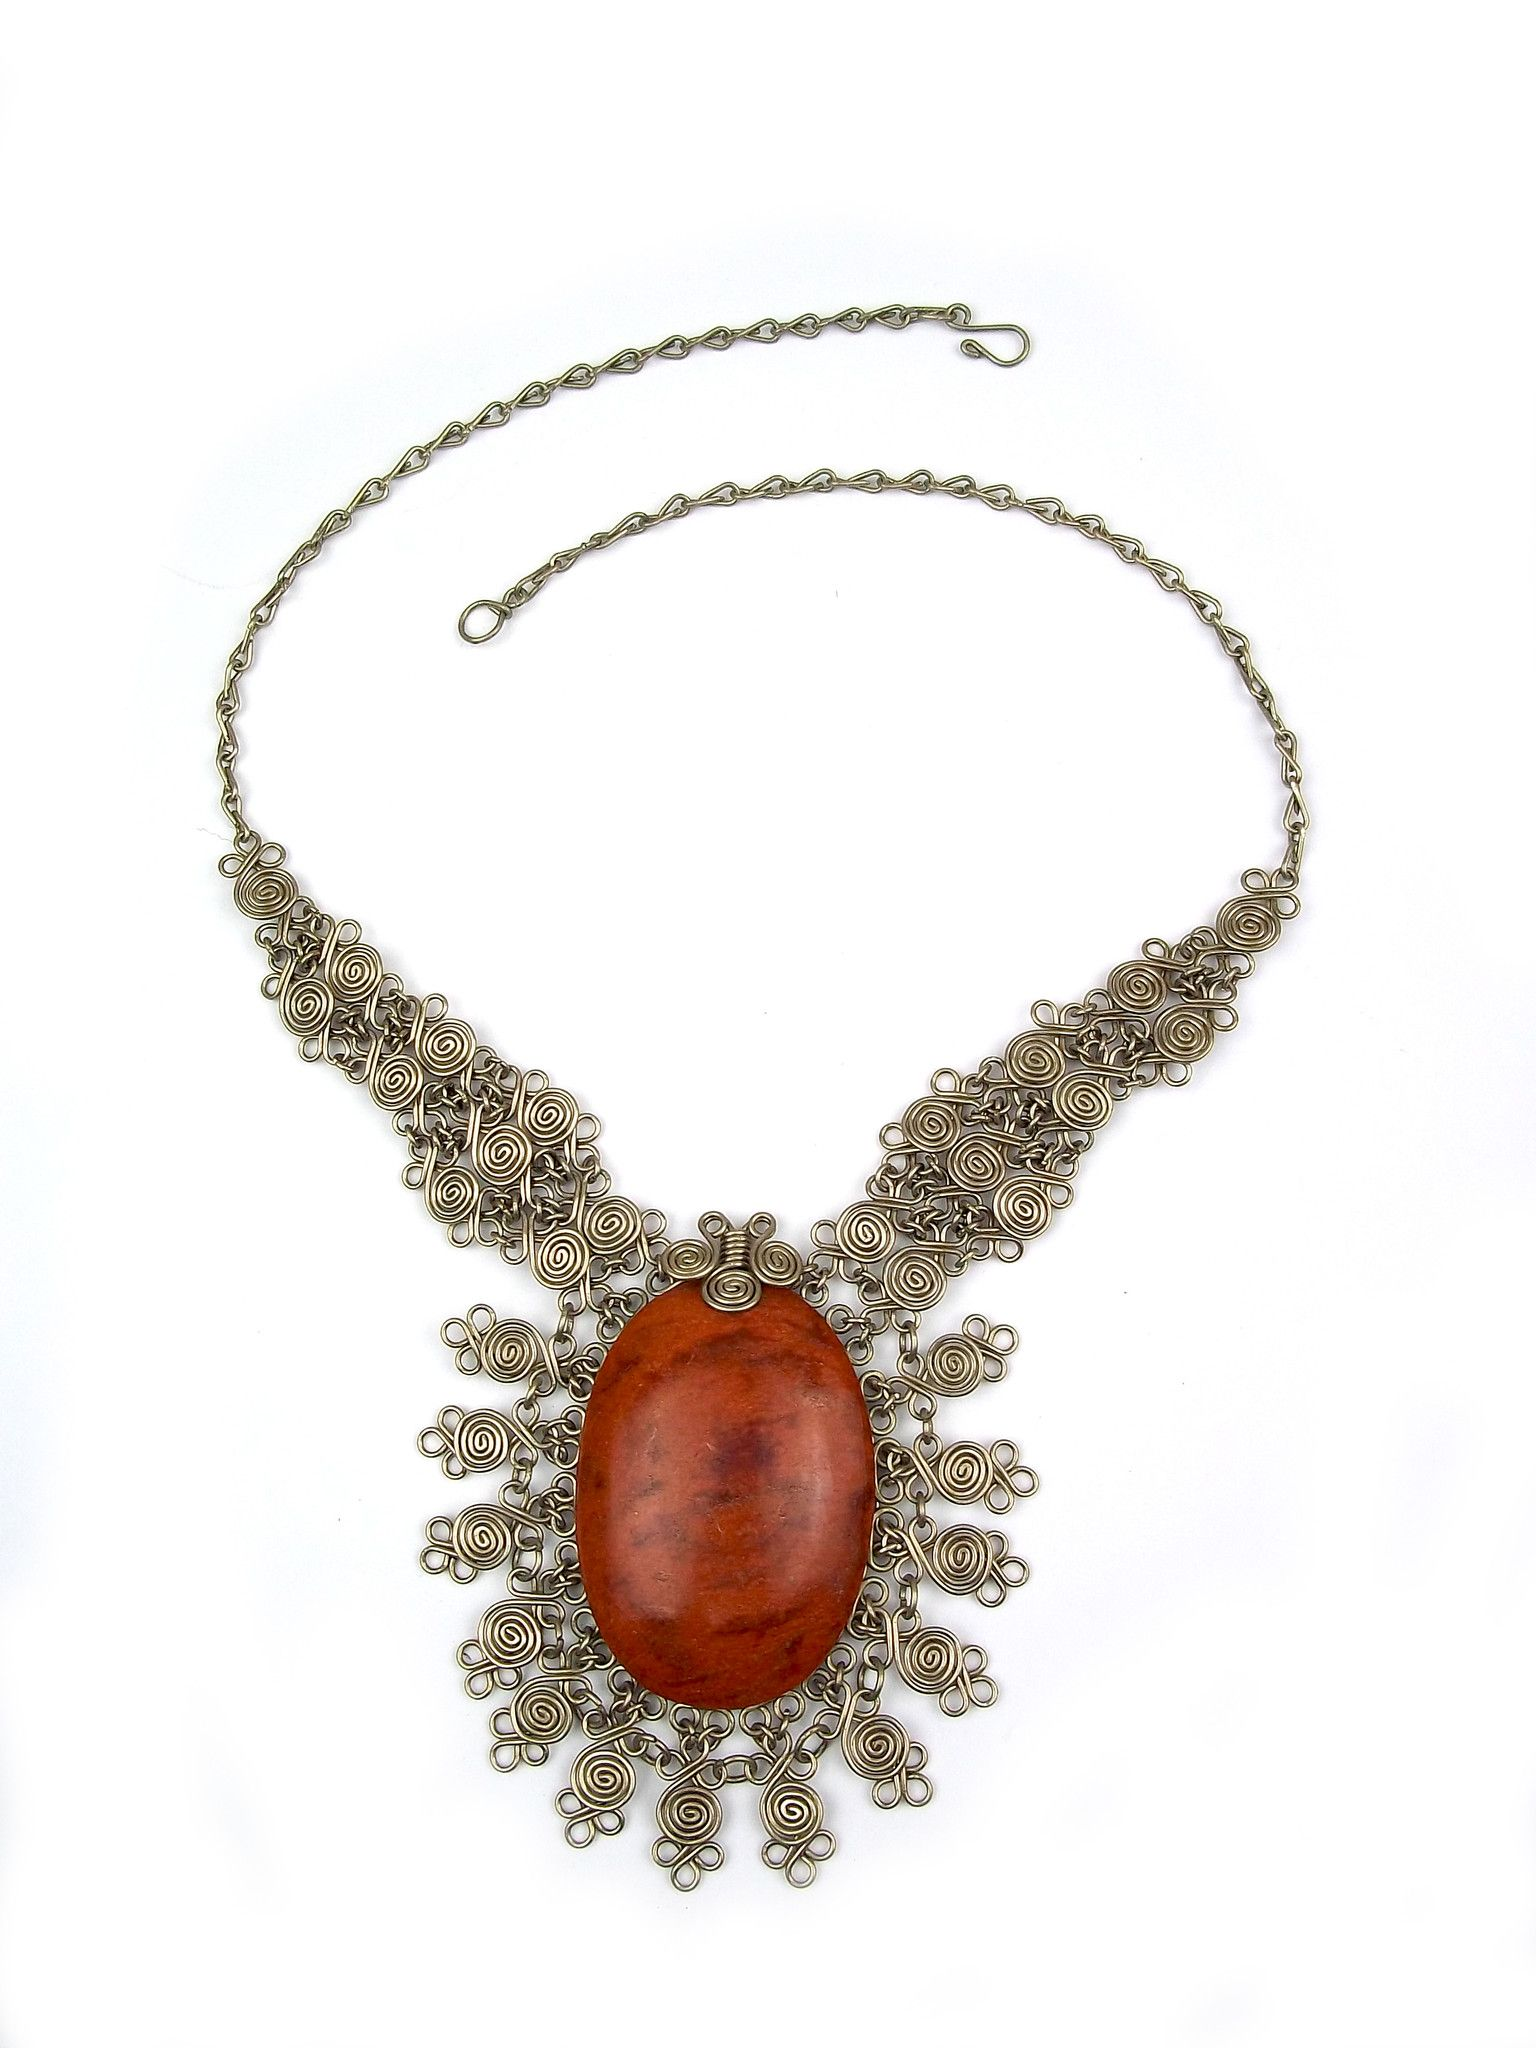 Tanya - Jasper – Wari Designs | Wired Wrapture | Pinterest | Jasper ...